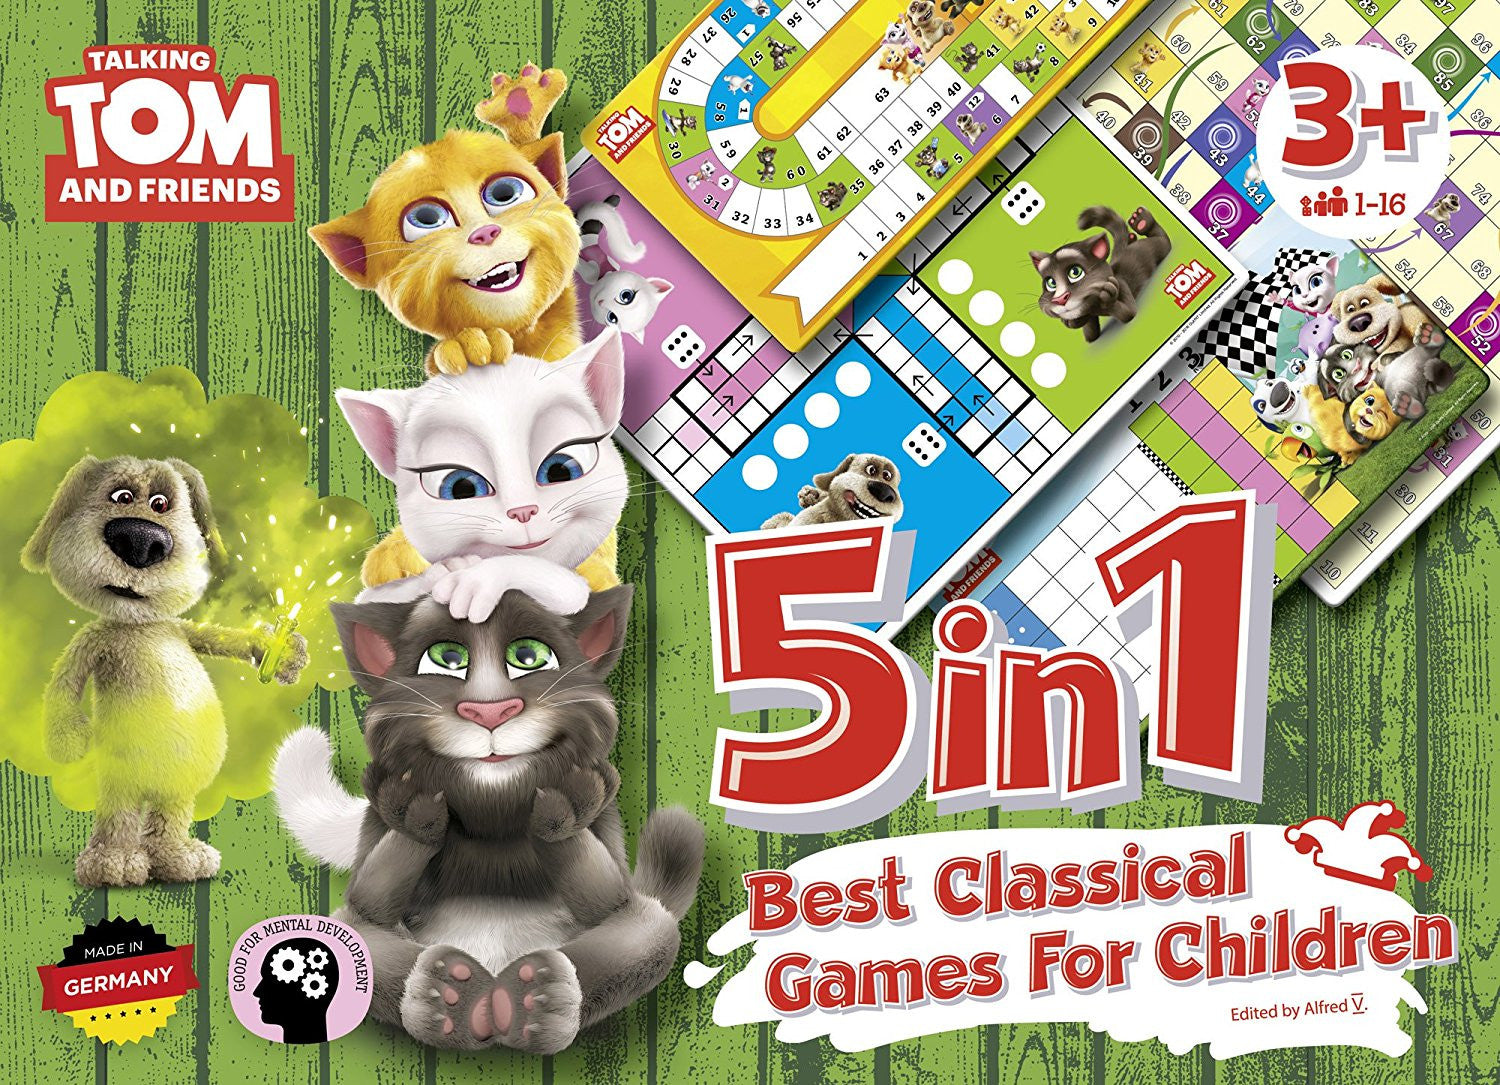 5 in 1 Best Classical Games For Children, Talking Tom and Friends Tabletop Games